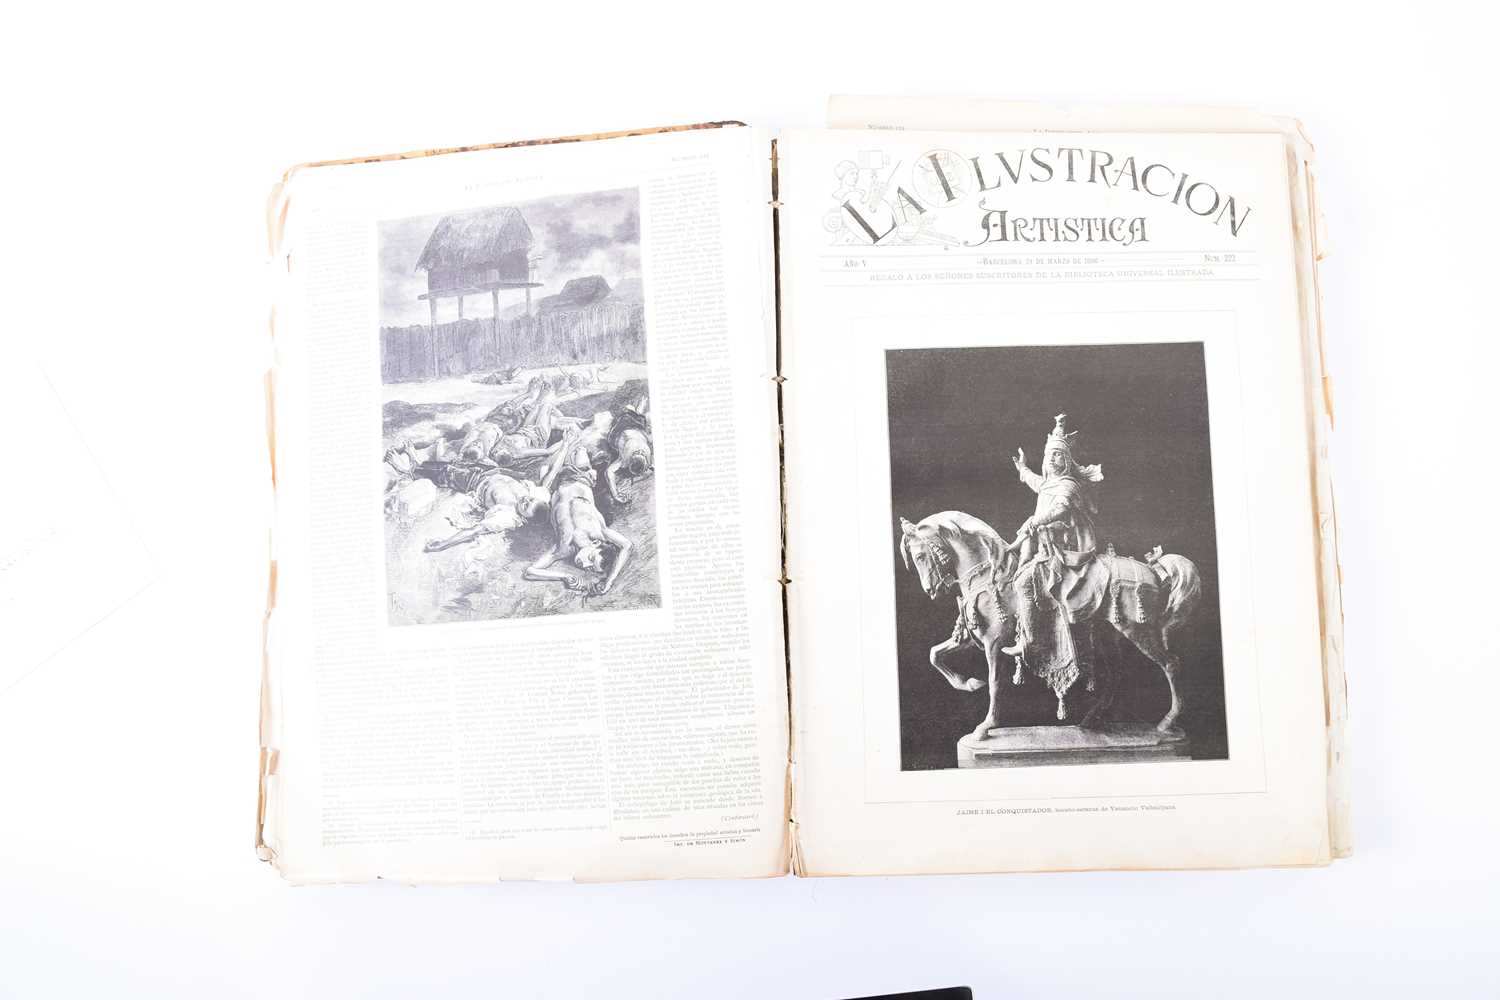 Lot 61 - 'Ilustración Artística', a finely leather-bound volume of several copies of the Spanish art